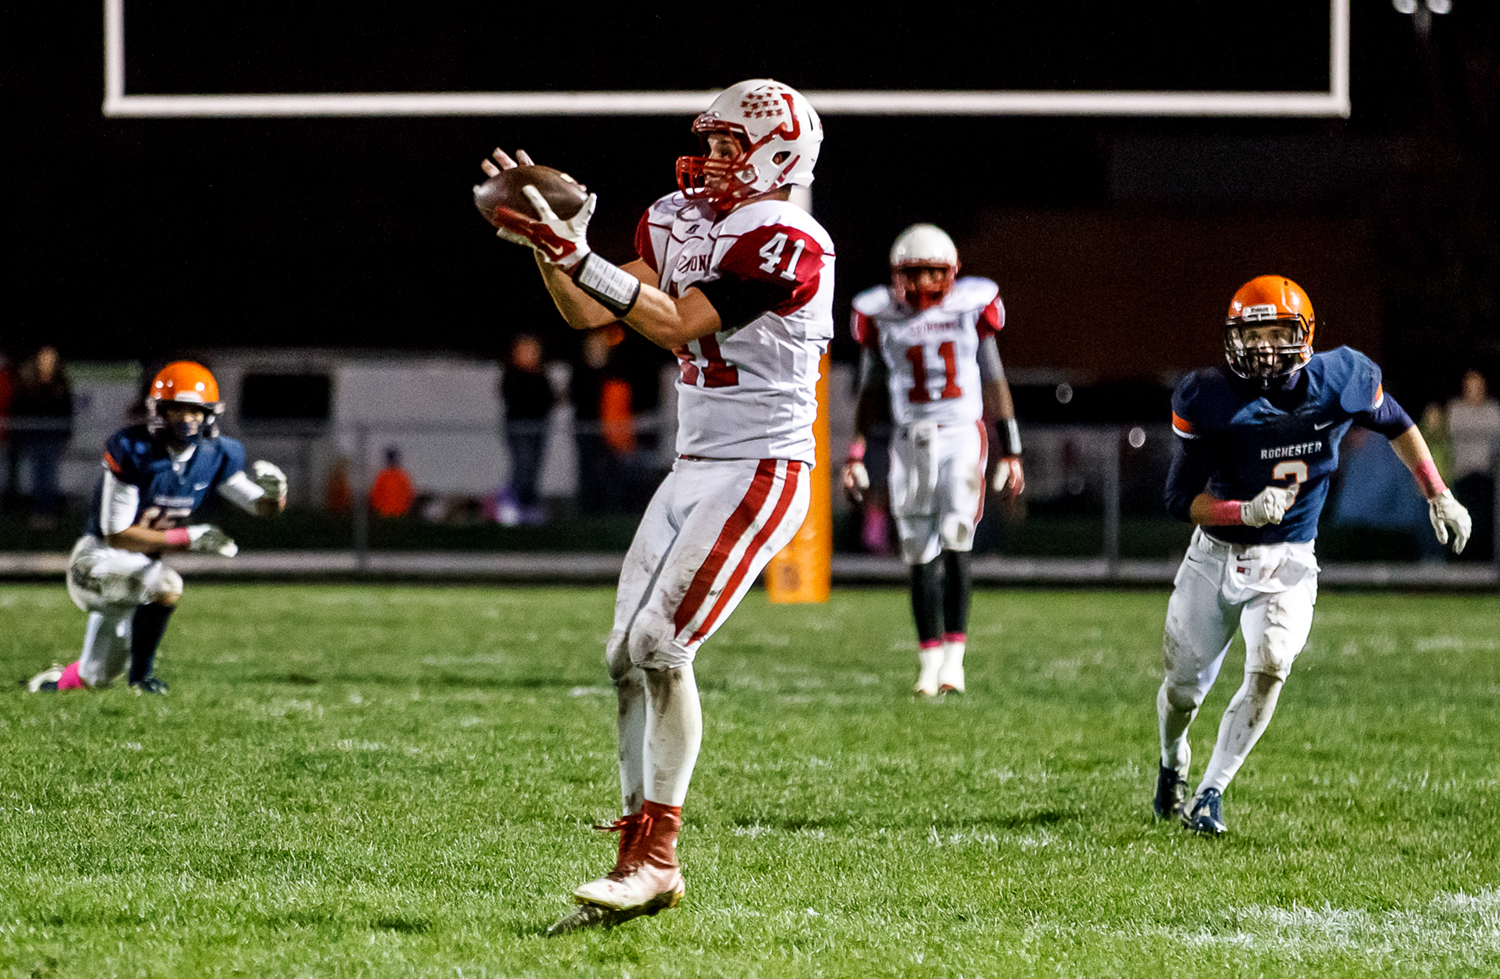 Jacksonville's Adam Hillis (41) pulls in a pass against Rochester during the second half at Rocket Booster Field, Friday, Oct. 10, 2014, in Rochester, Ill. Justin L. Fowler/The State Journal-Register